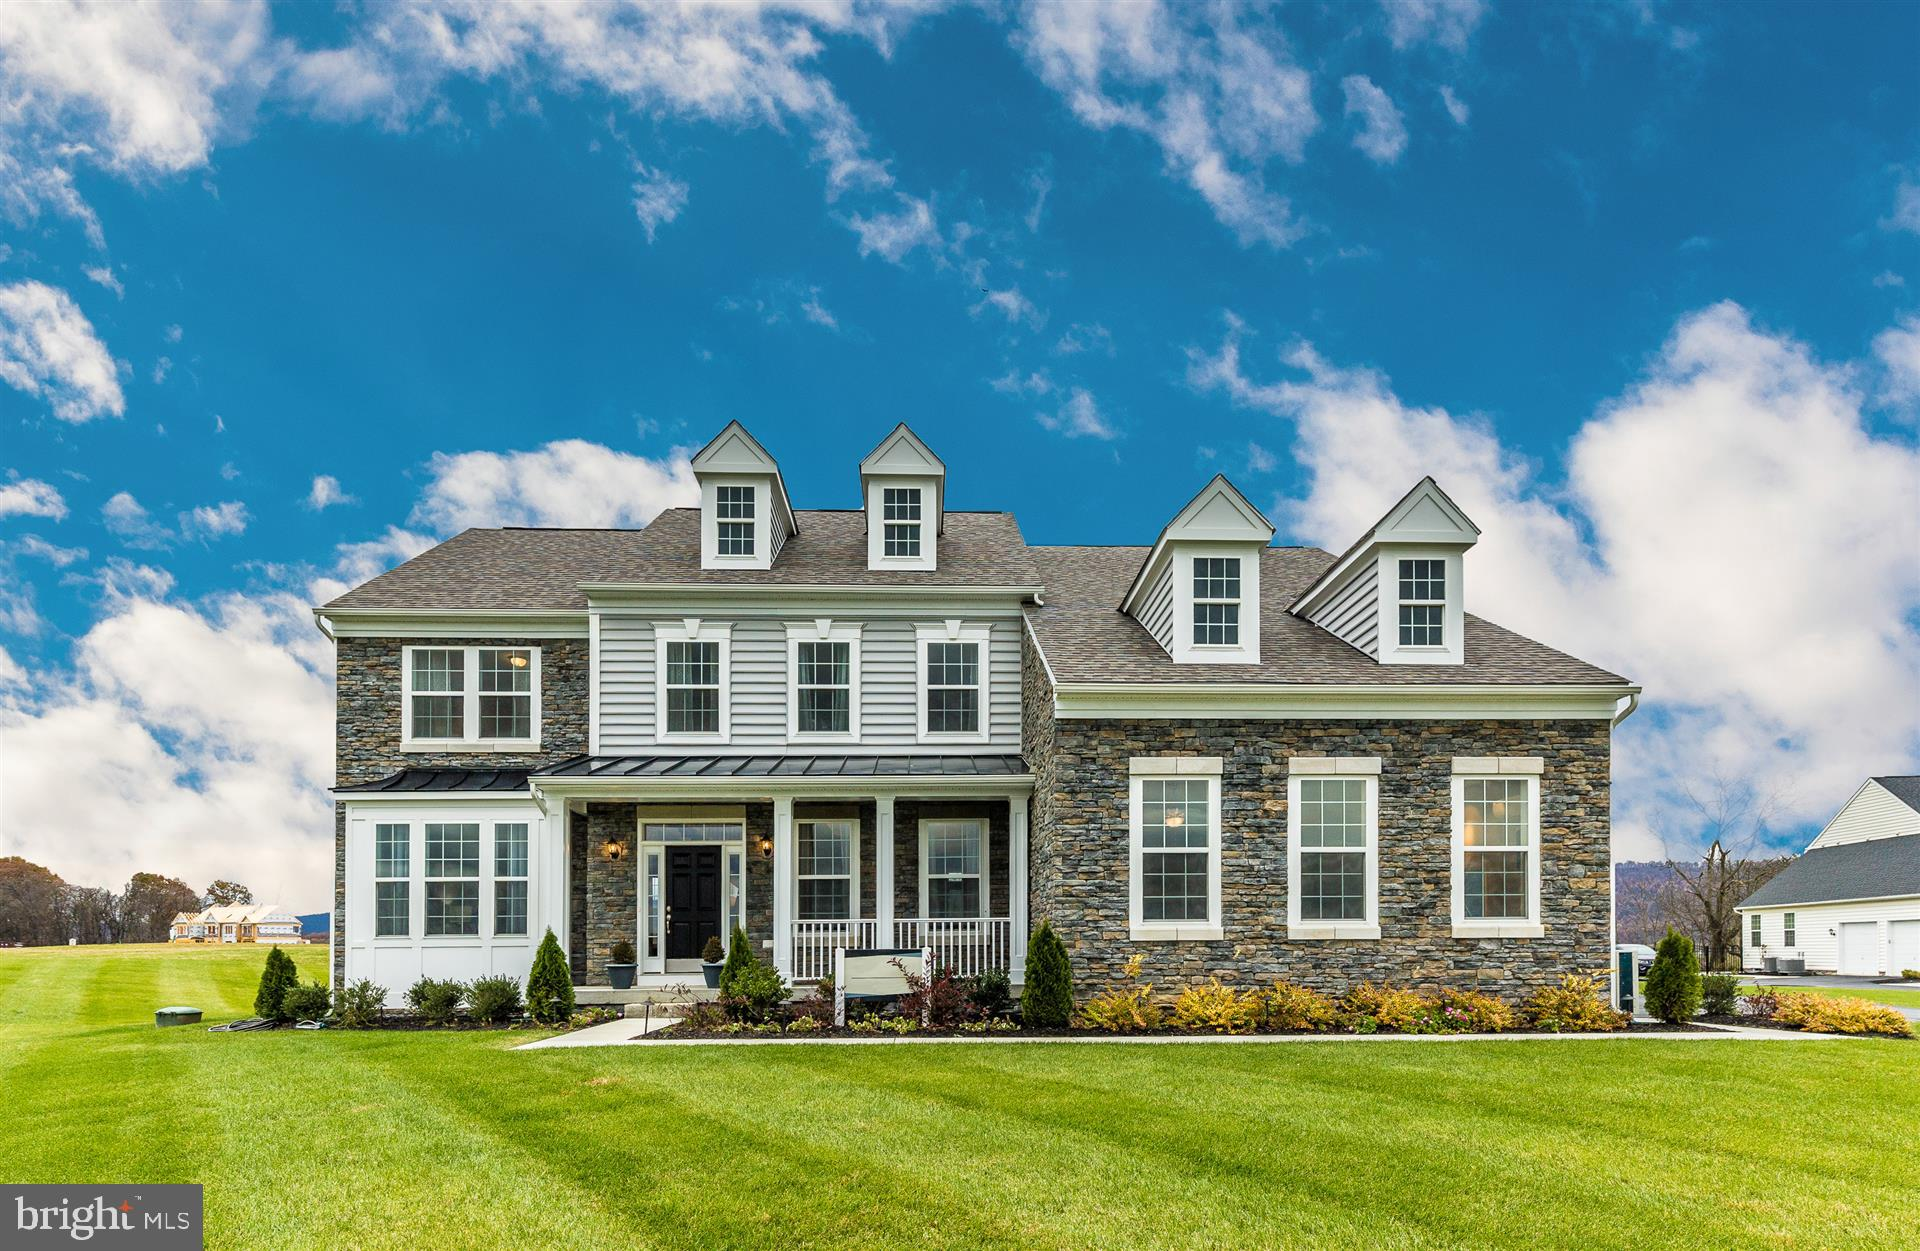 523 Isaac Russell, New Market, MD, 21774